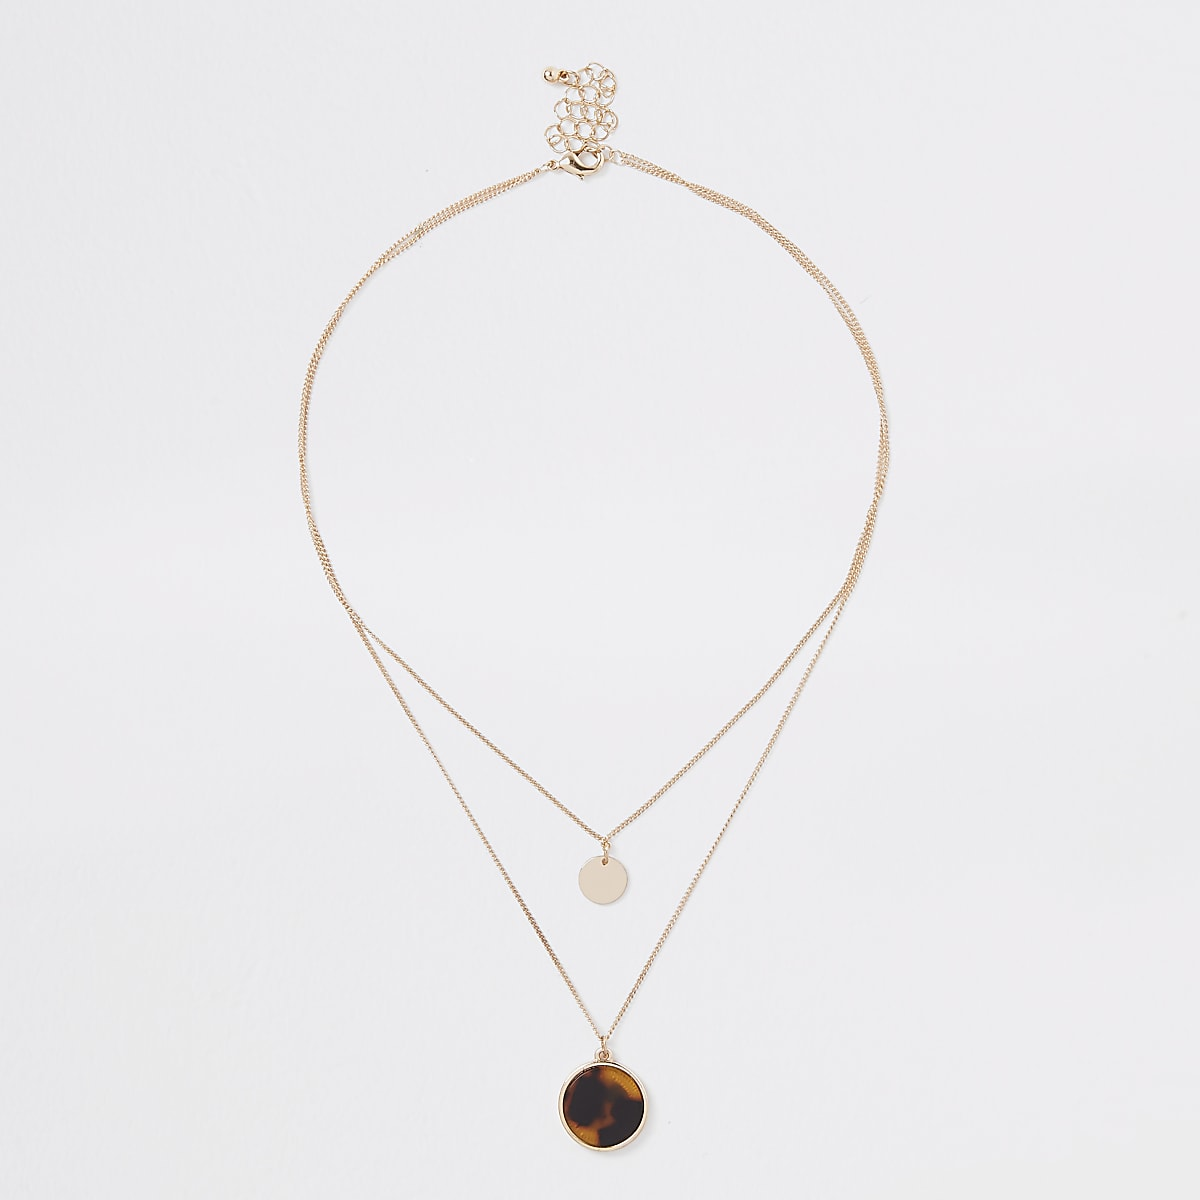 Gold color black and yellow circle necklace